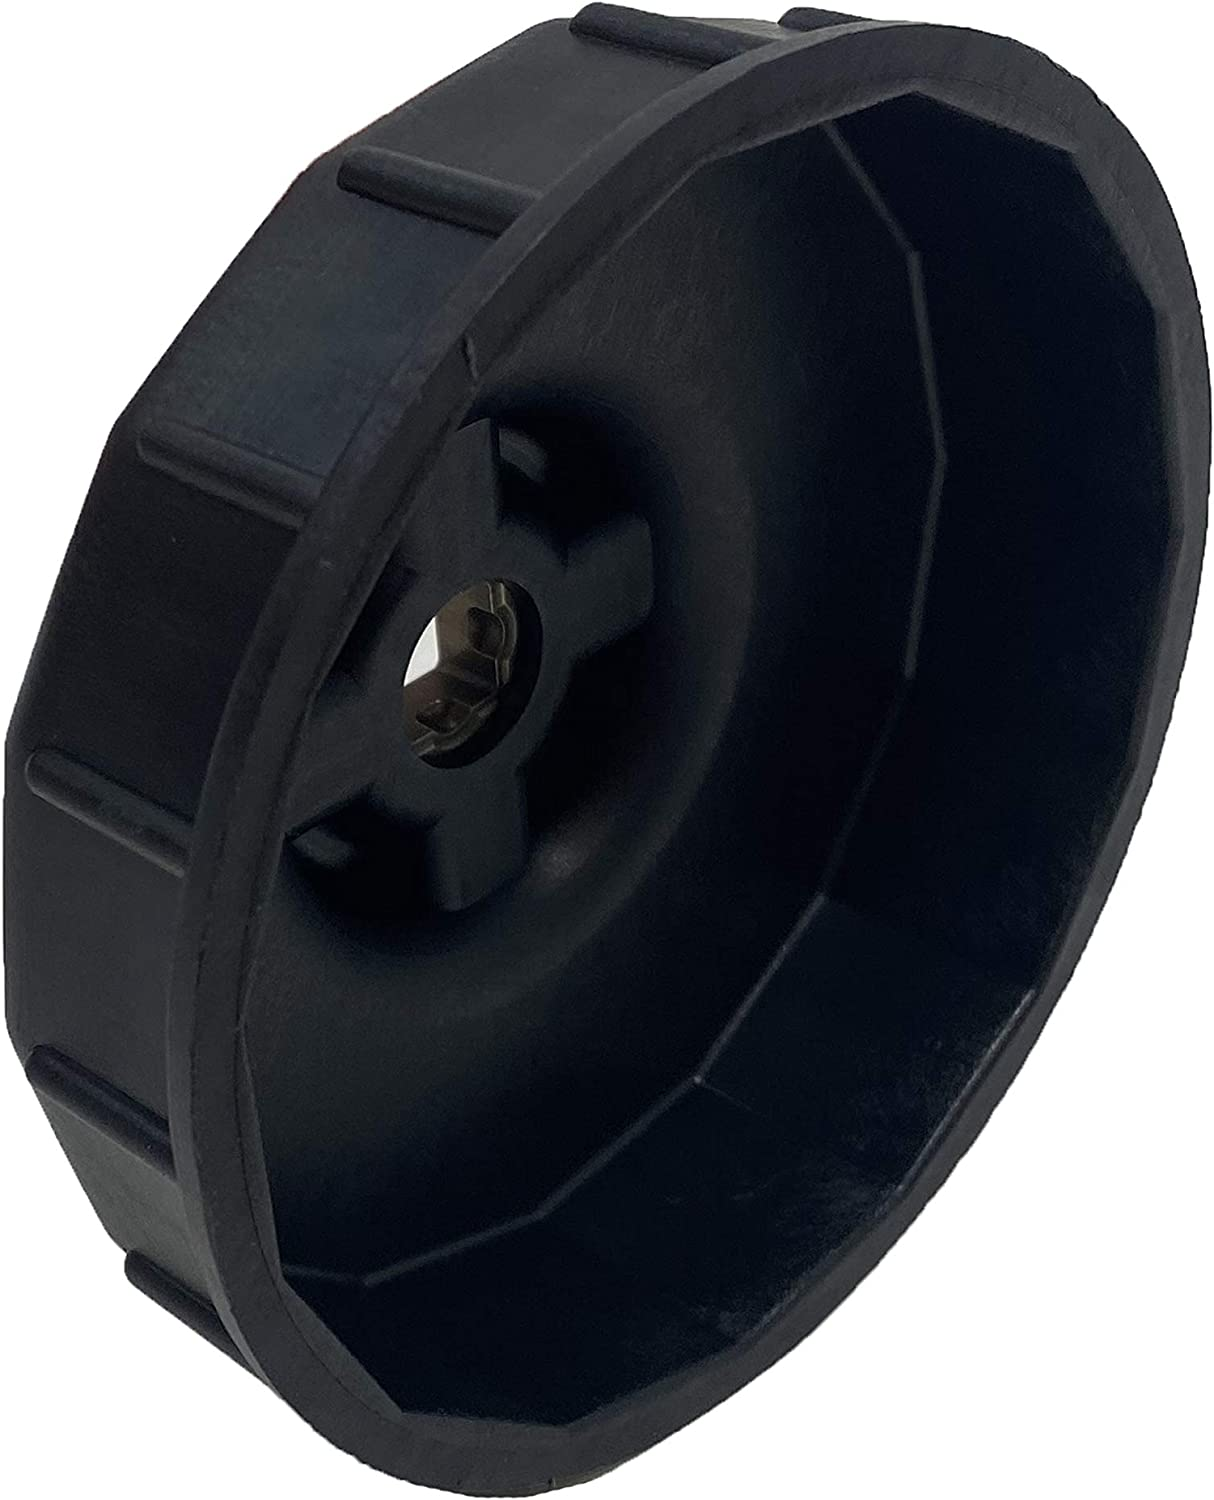 93 X 15 CTA Tools 3863 Oil Filter Wrench